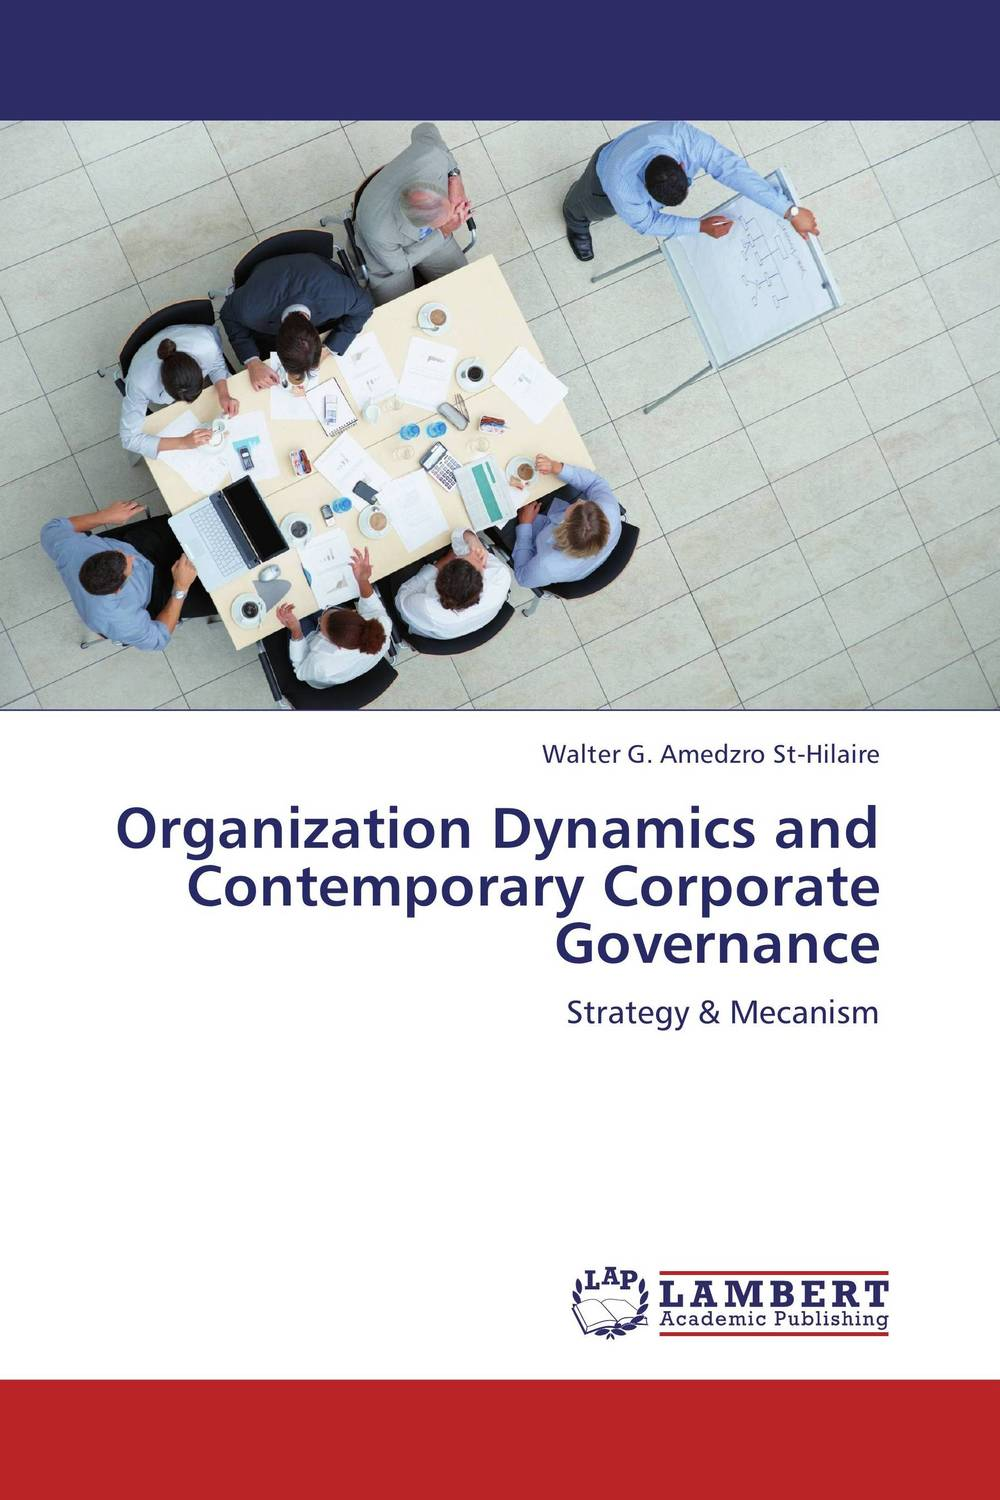 Organization Dynamics and Contemporary Corporate Governance corporate governance audit quality and opportunistic earnings